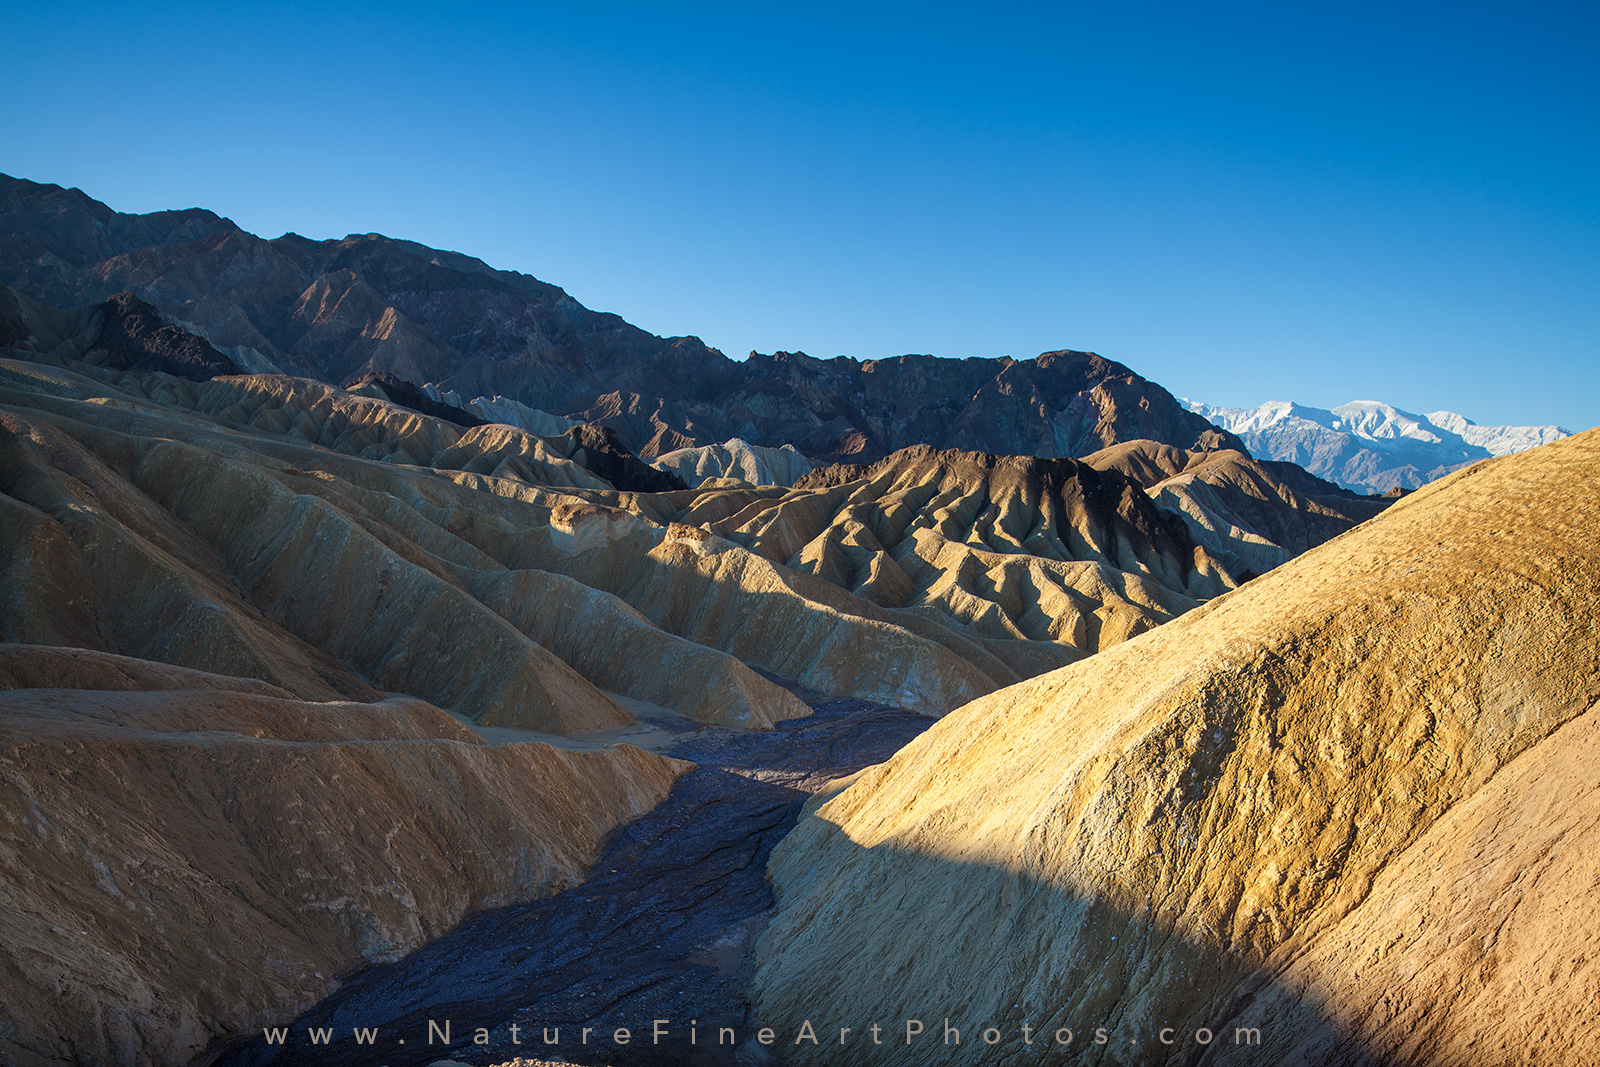 Zabriski point overlook in Death Valley photo